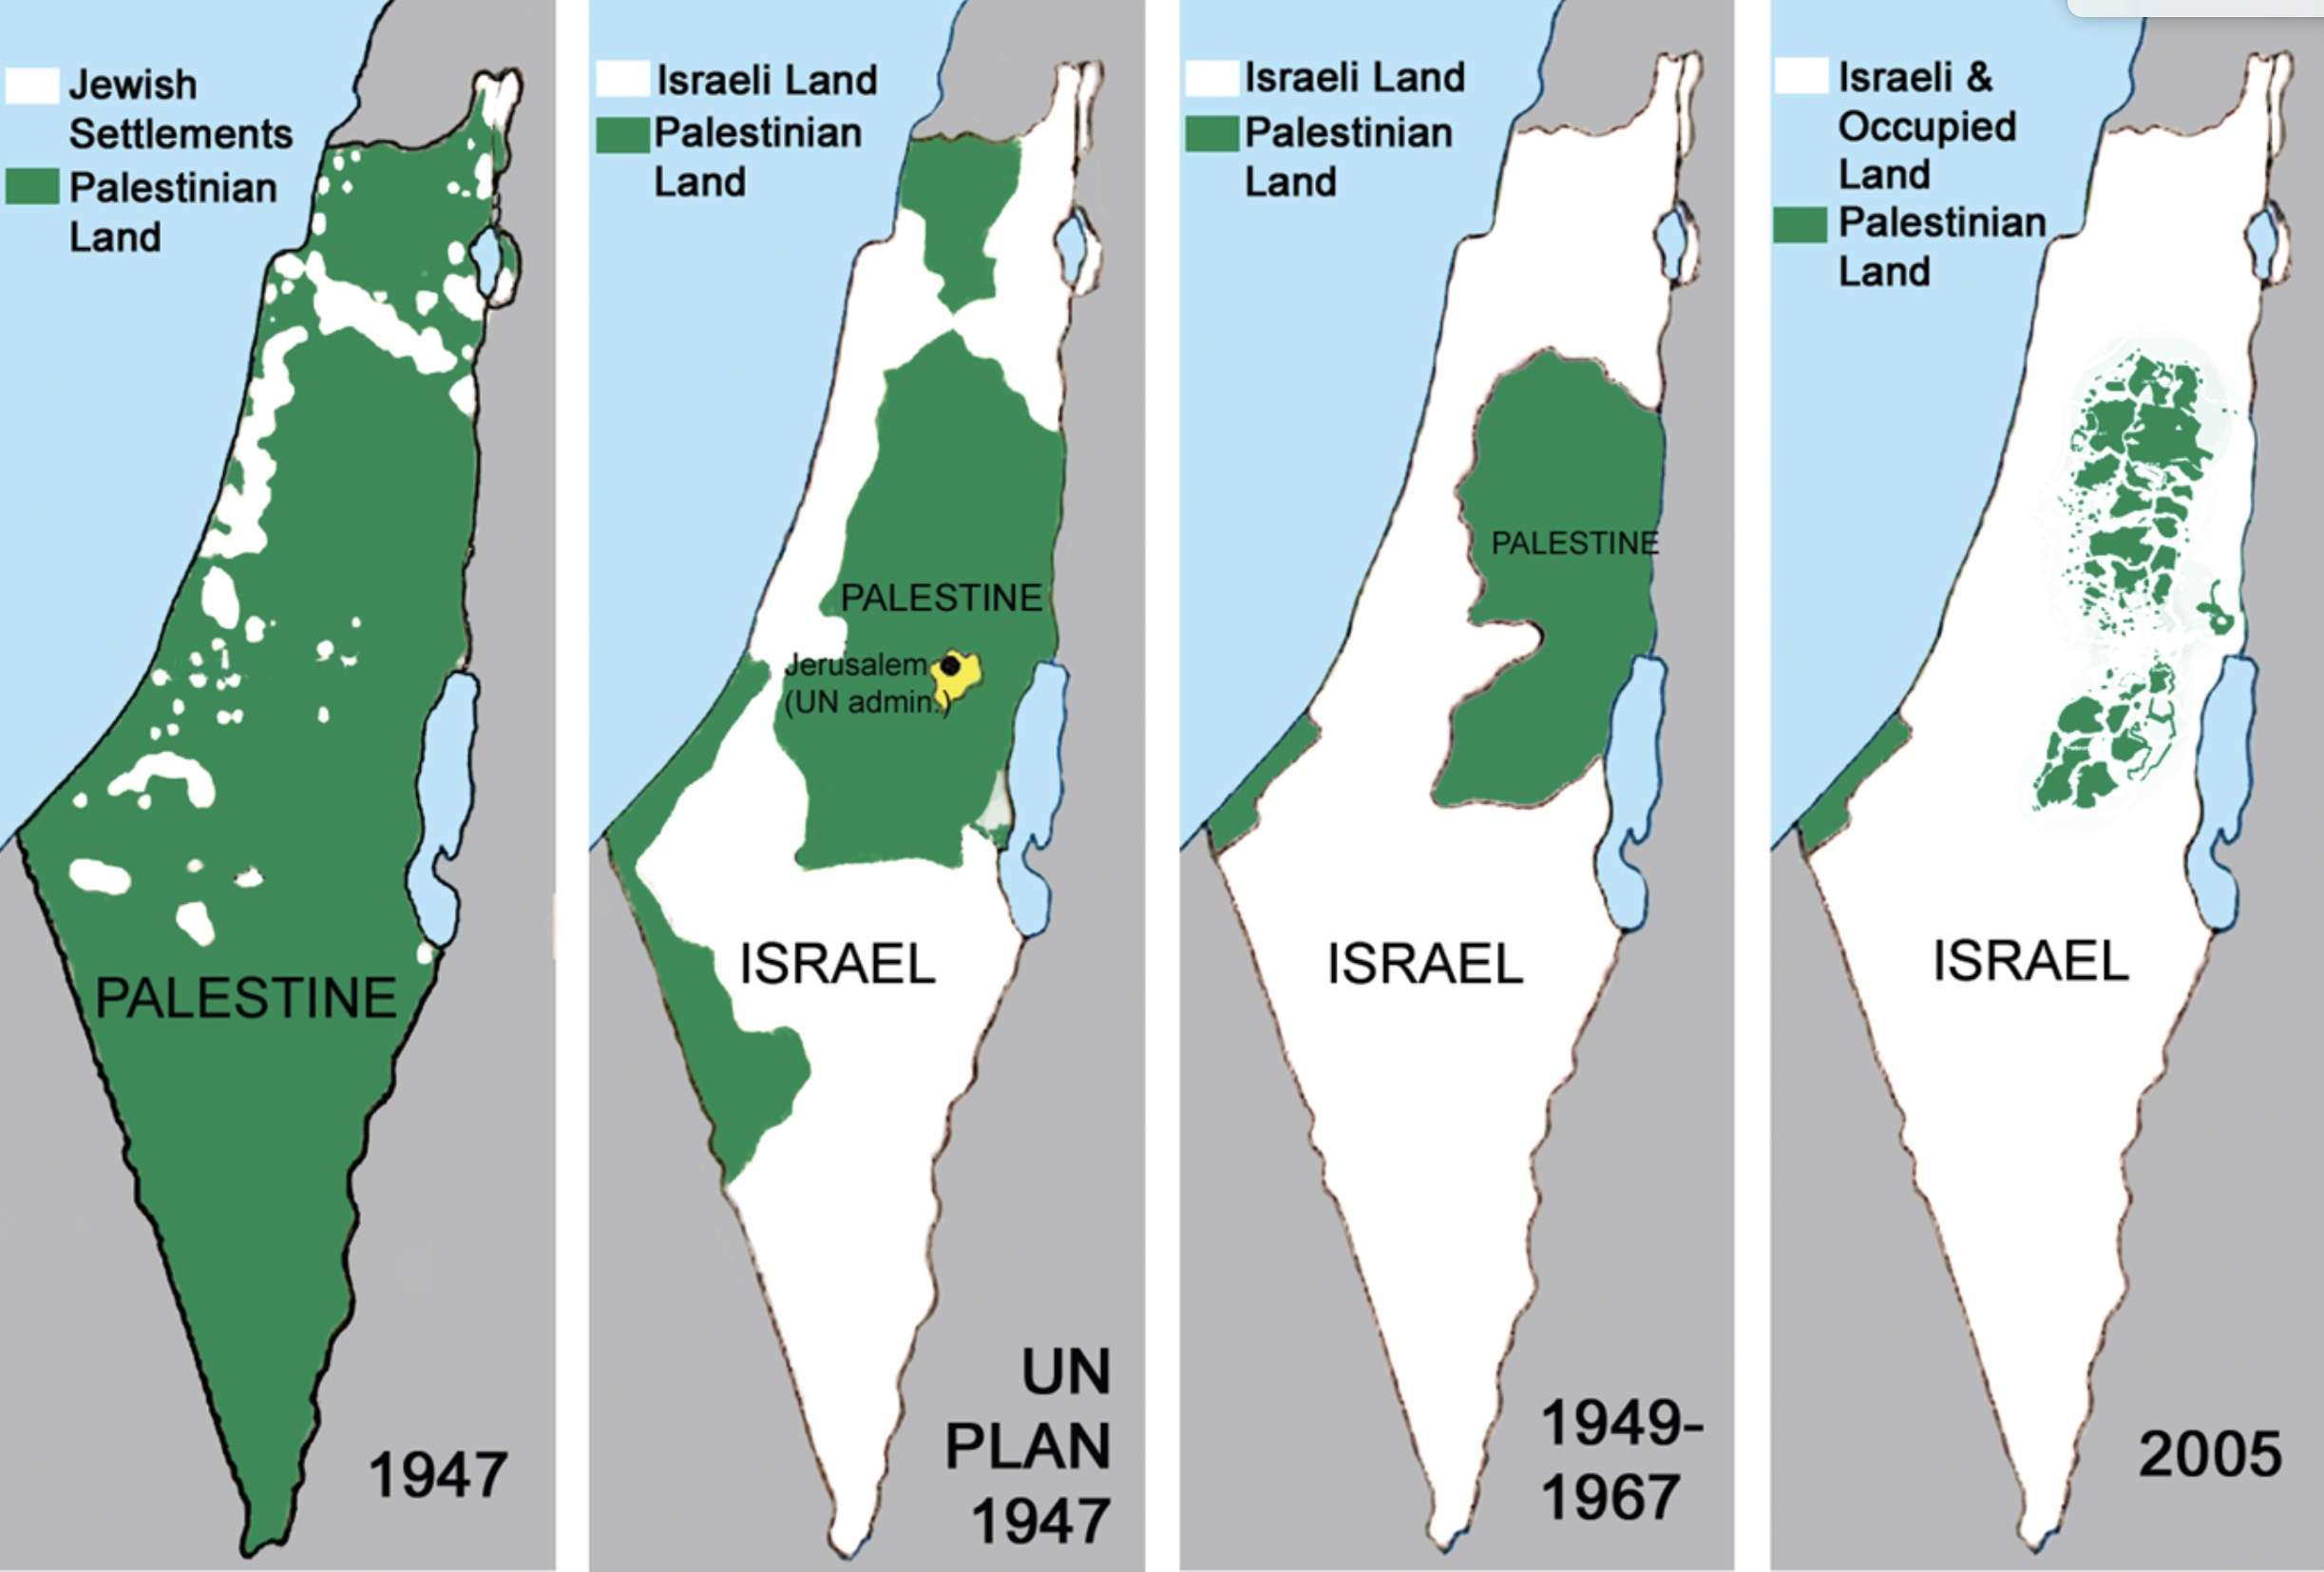 maps of Palestine and the land lost to Israeli settlement and occupation since 1947